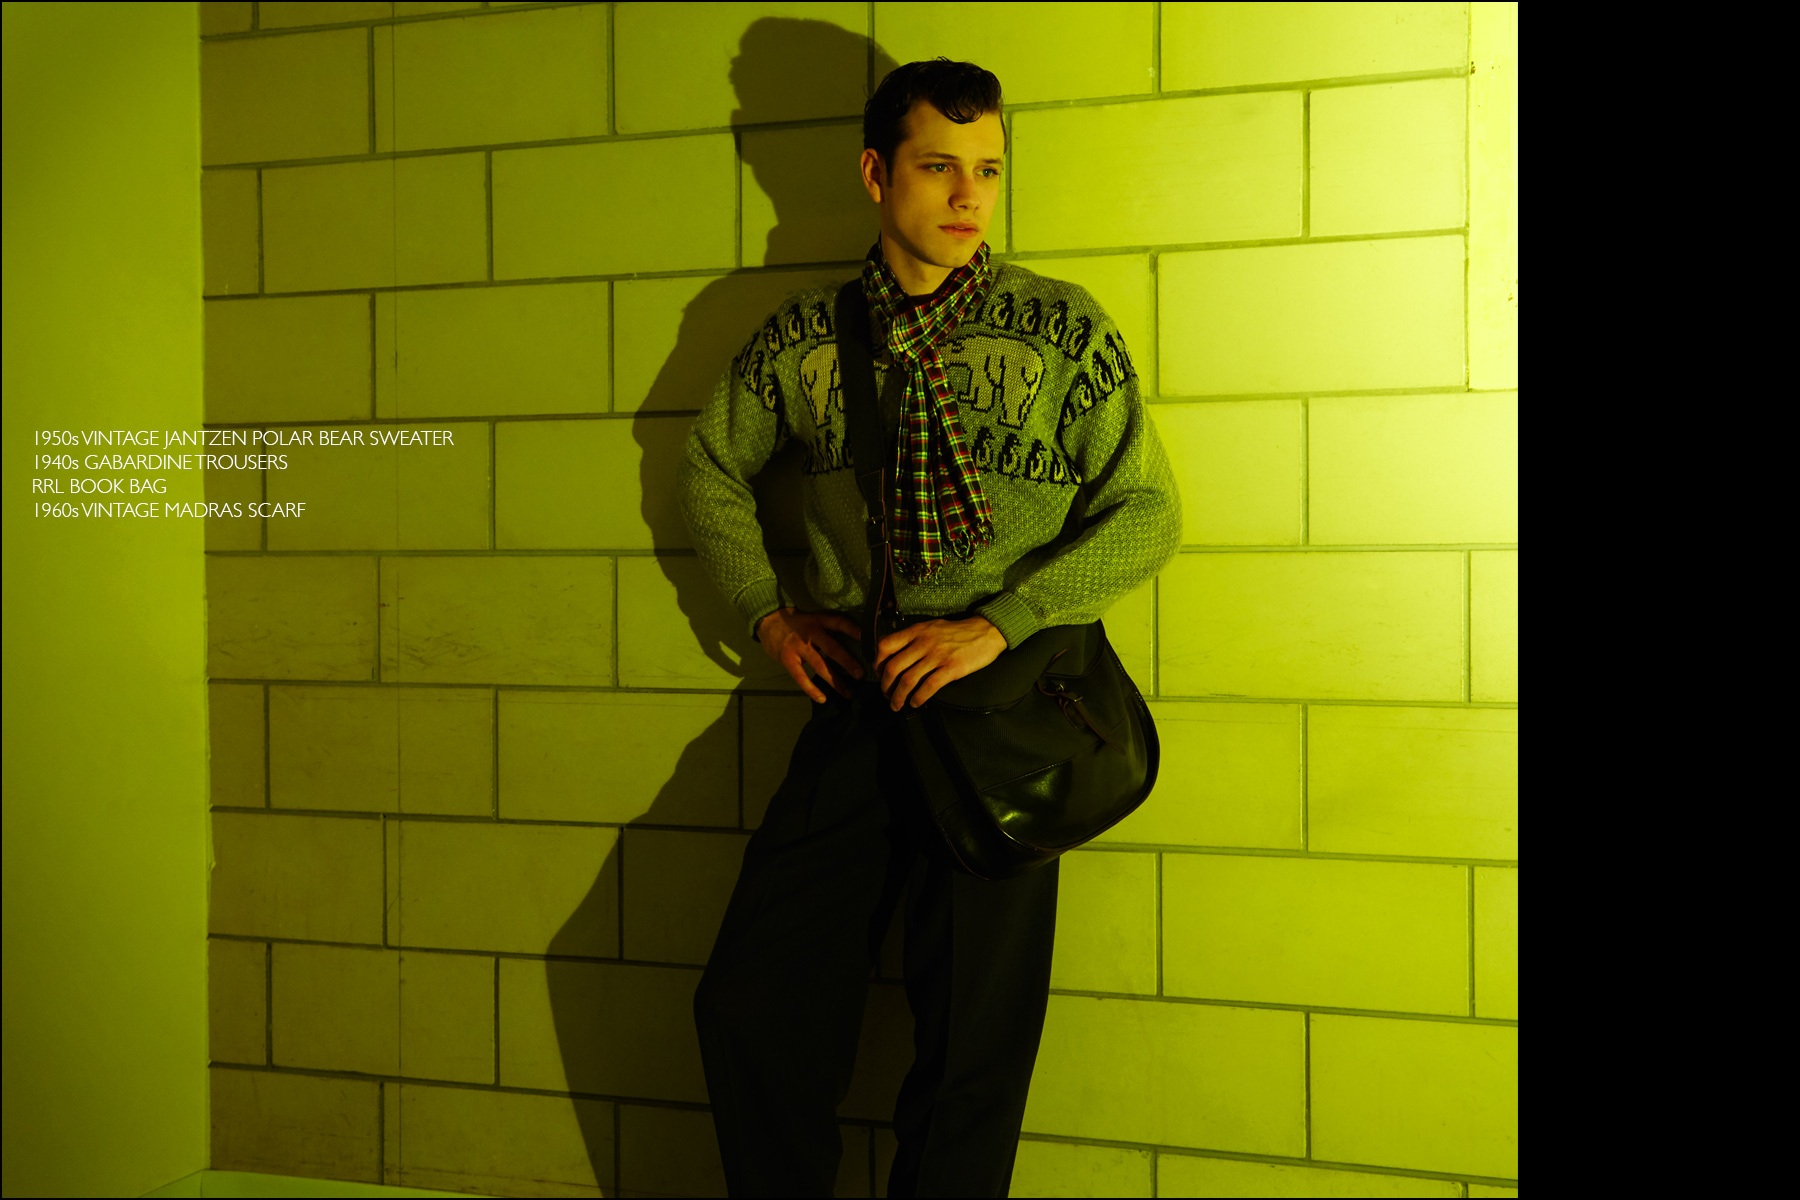 Rockabilly drummer Ben Heymann, from NYC band The Bothers, photographed in vintage clothing from New York City showroom Dated Vintage. Photographed by Alexander Thompson for Ponyboy magazine NY.